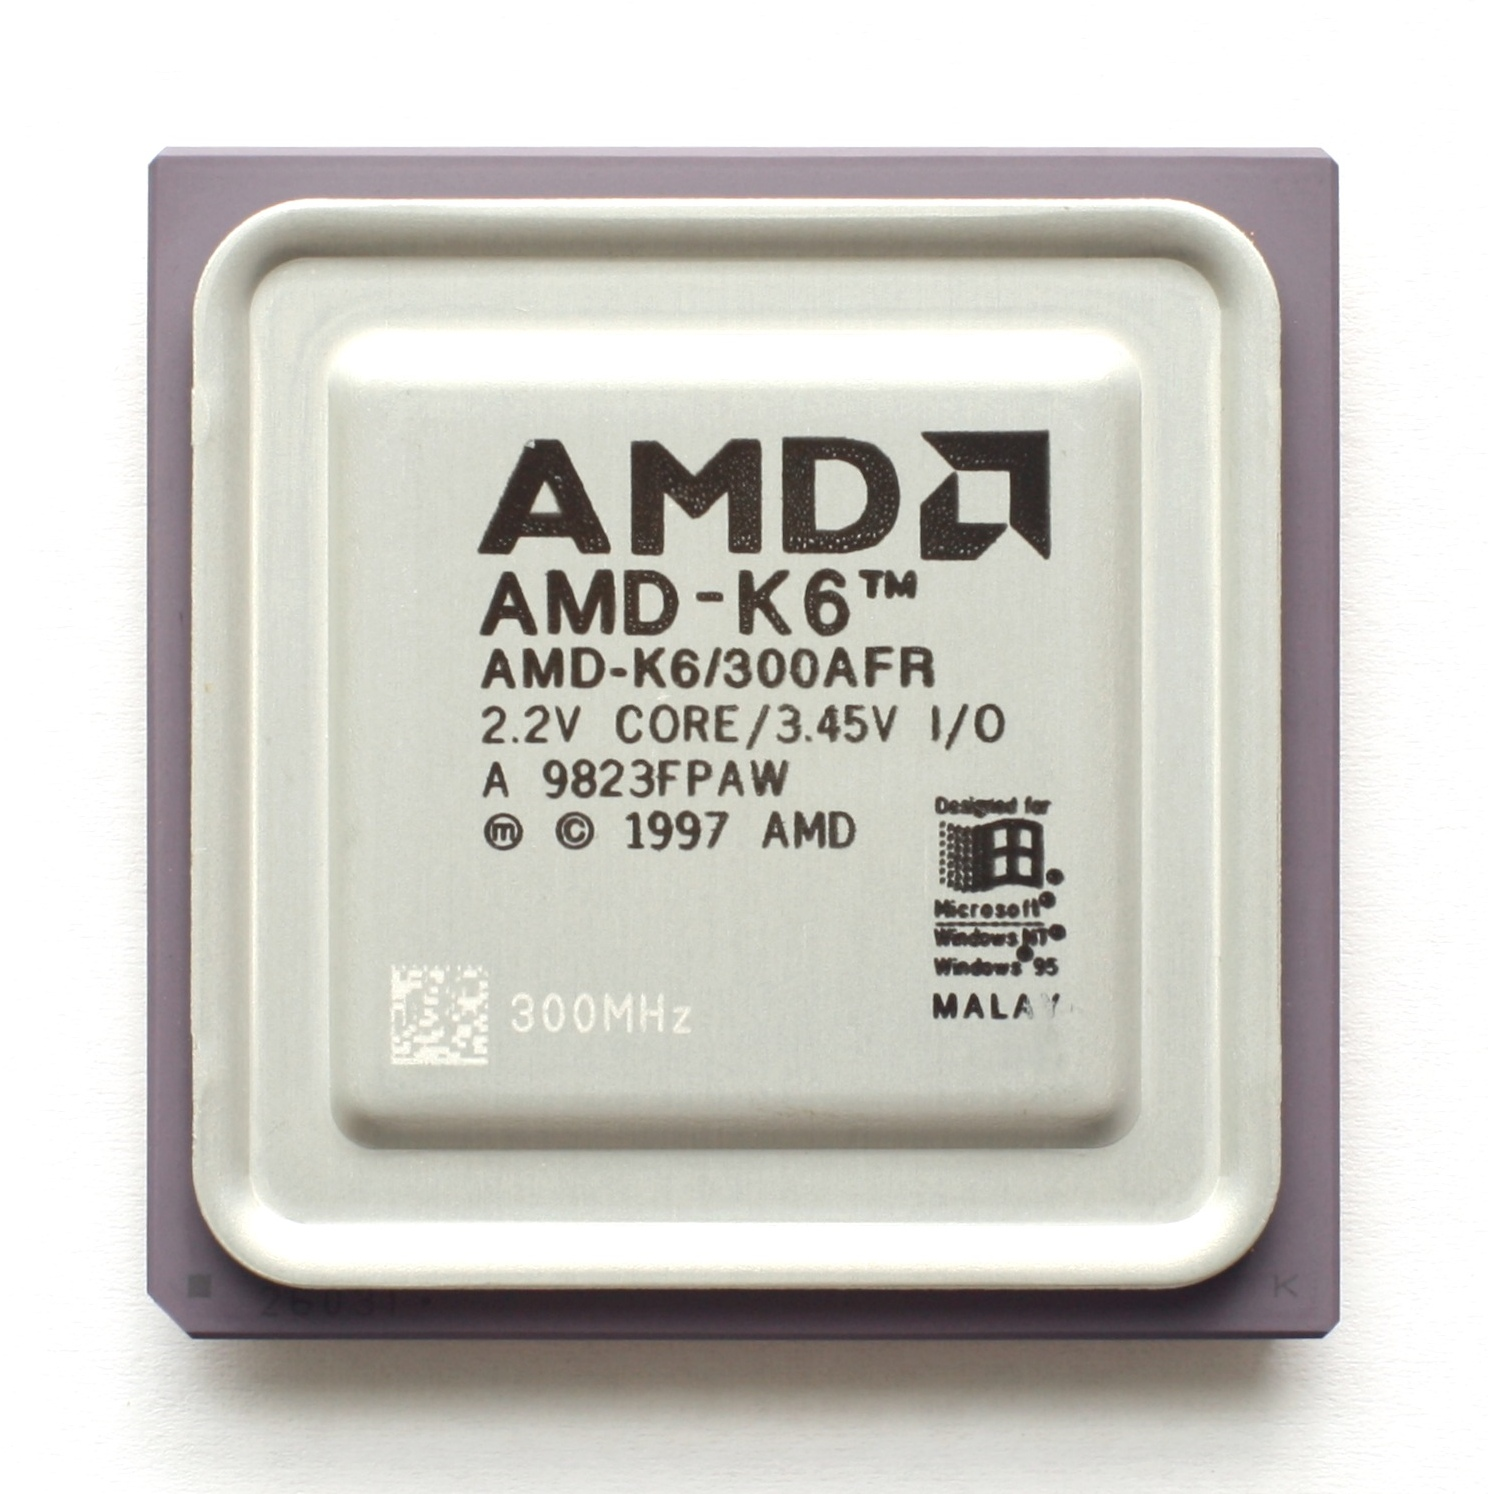 AMD K6 - Wikipedia, the free encyclopedia